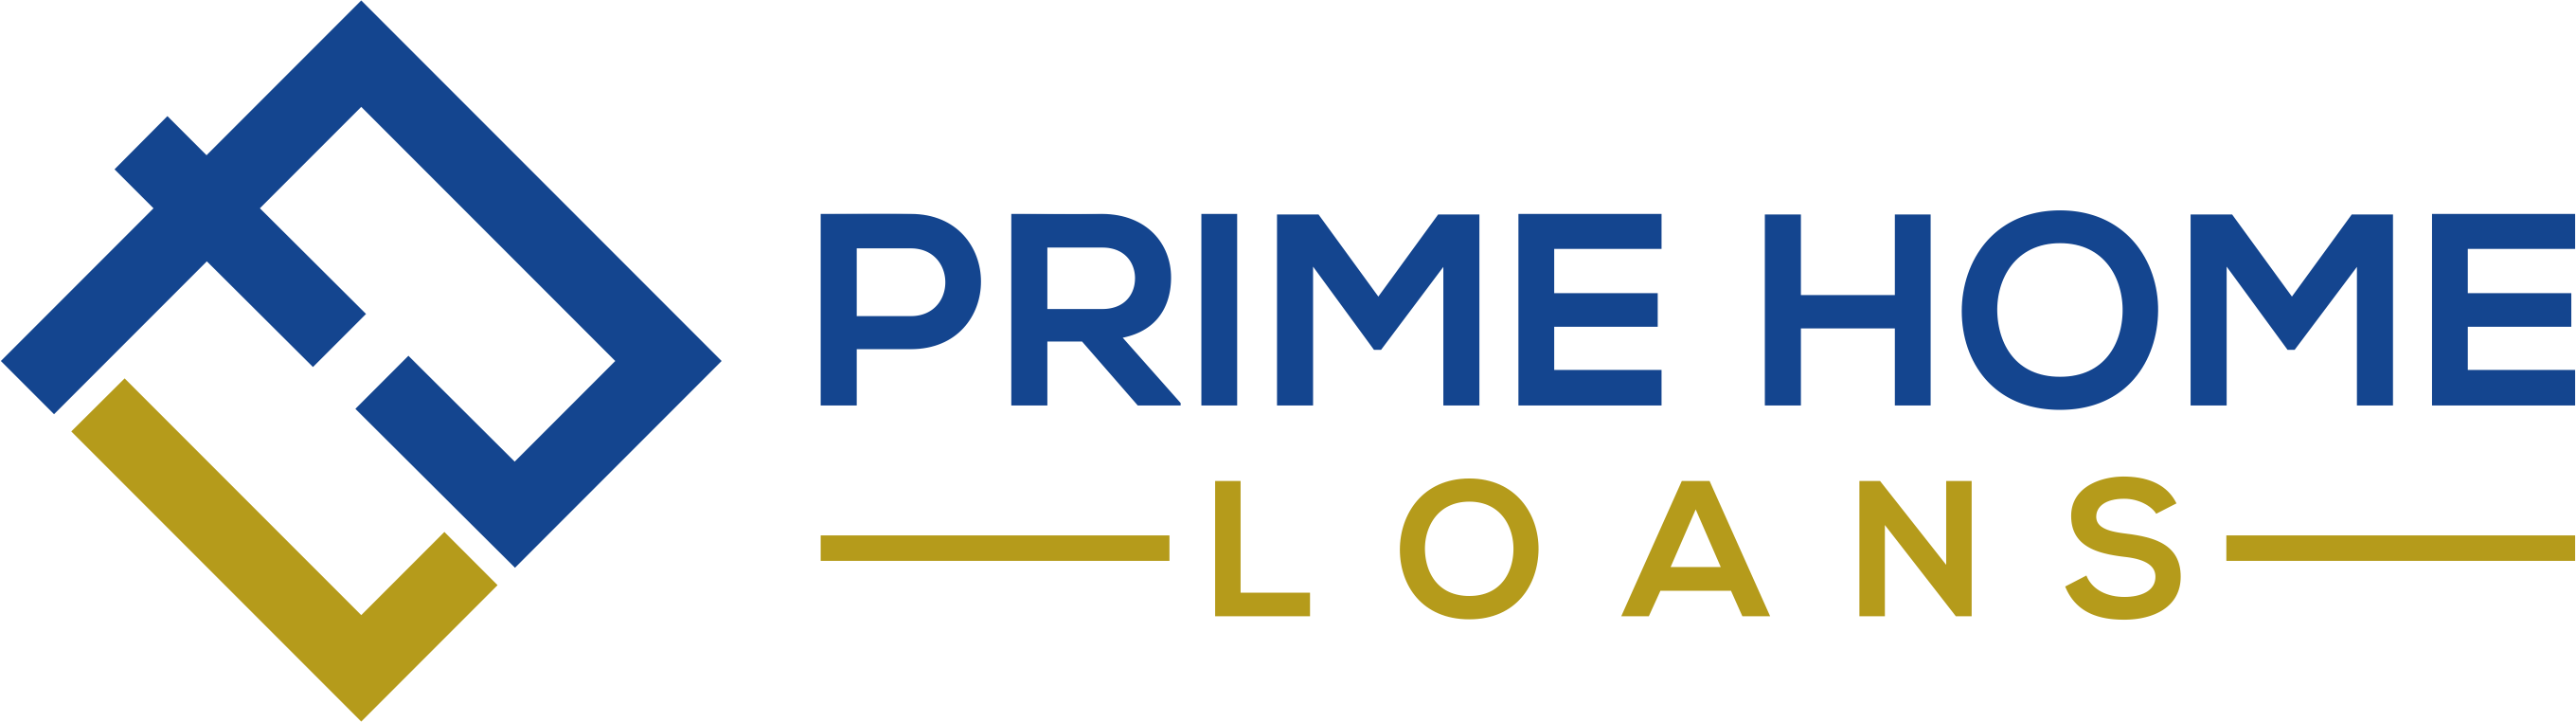 Prime Home Loans